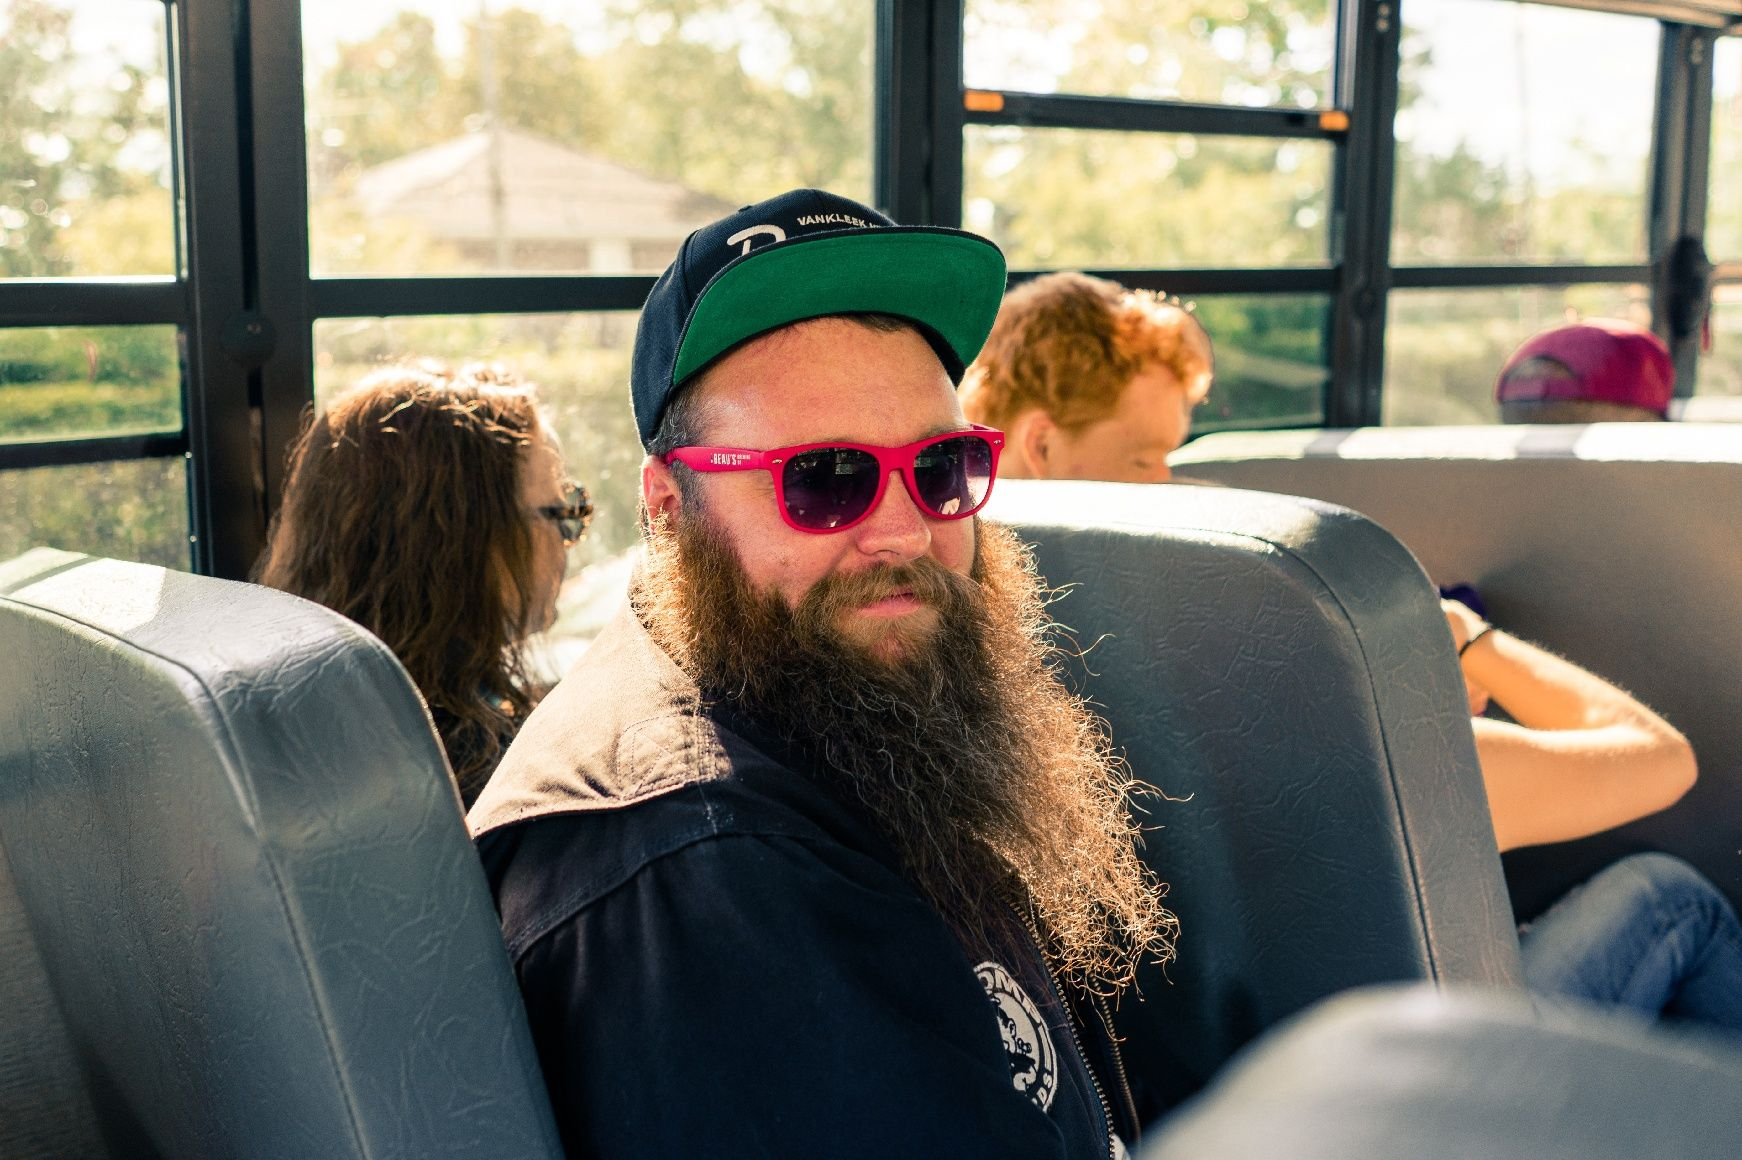 Brewery fan riding bus to beer festival